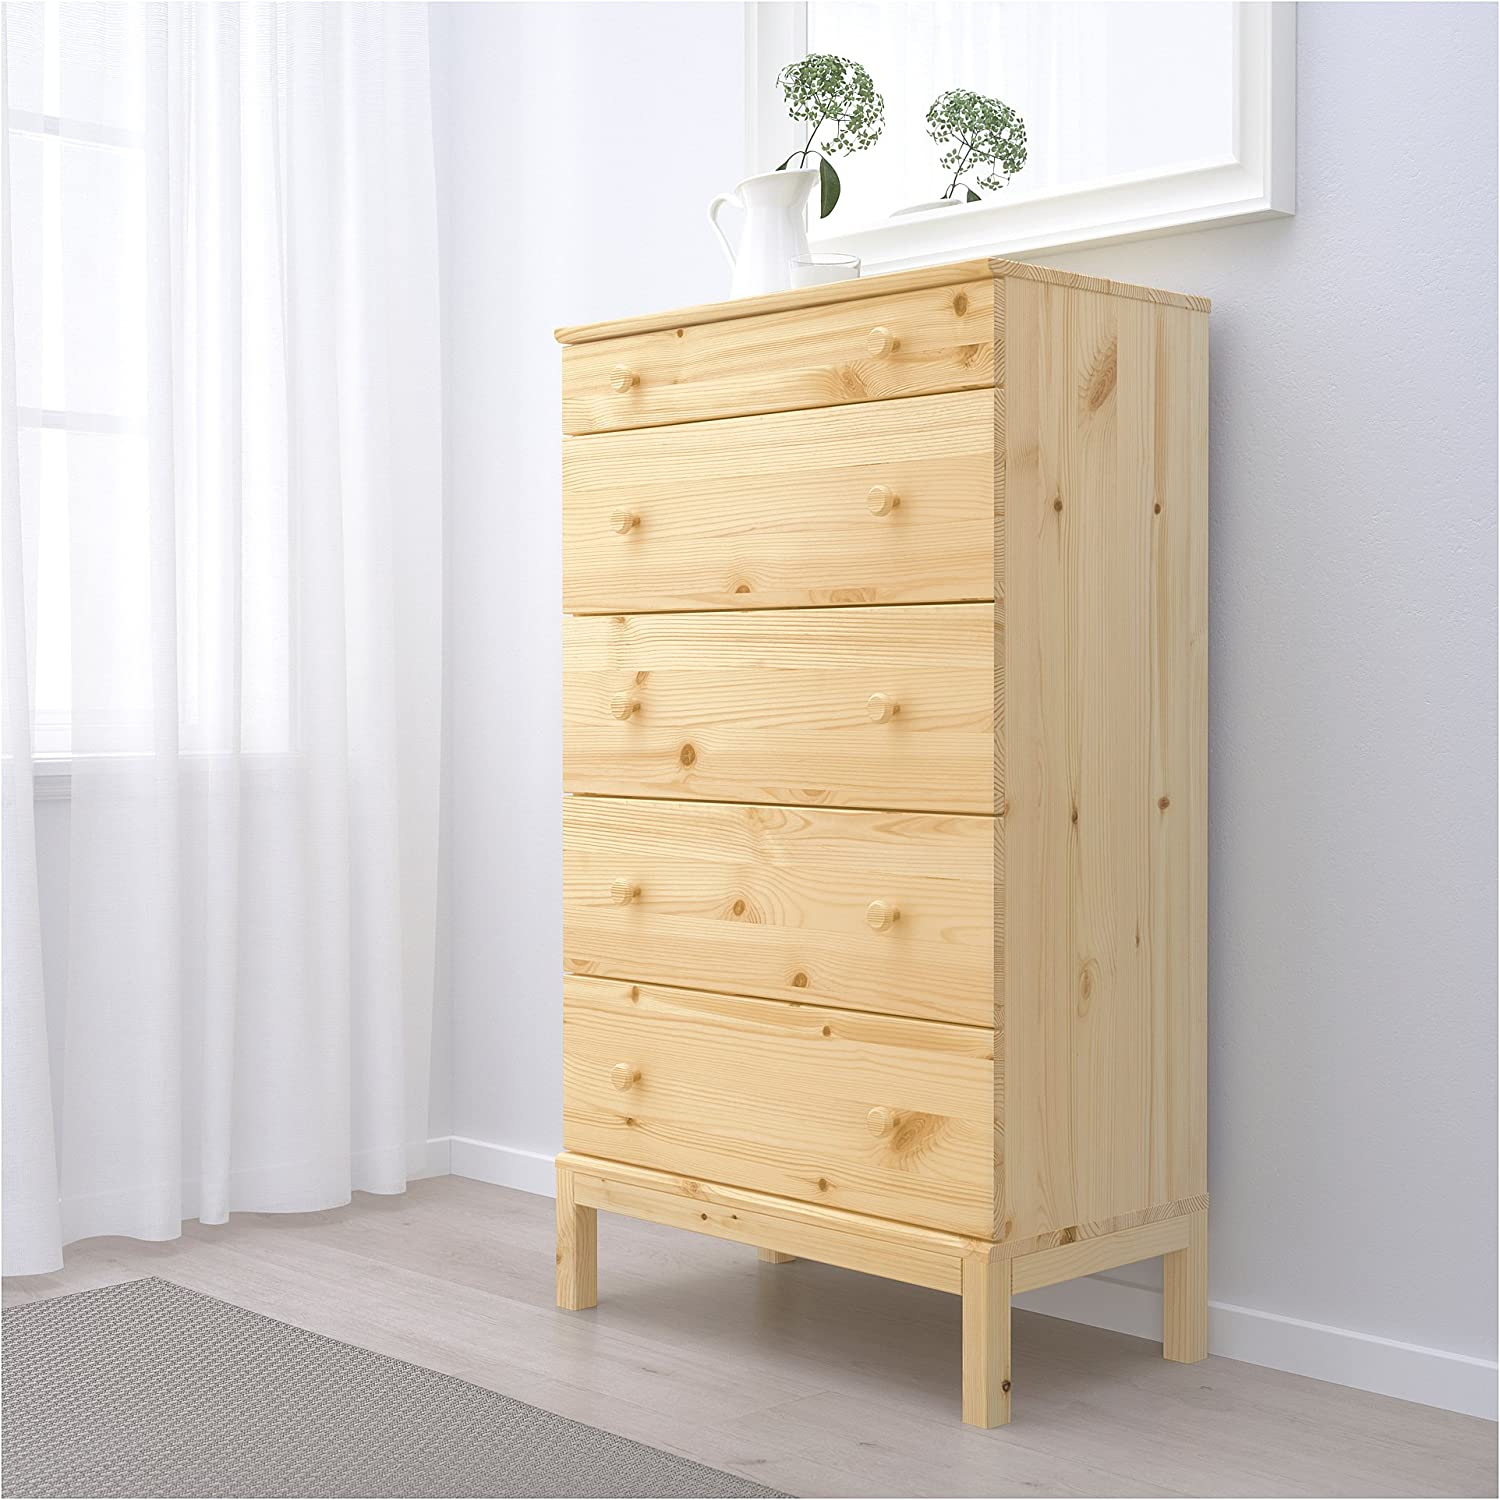 10. IKEA 5 Drawers Solid Wooden Tower Dresser.